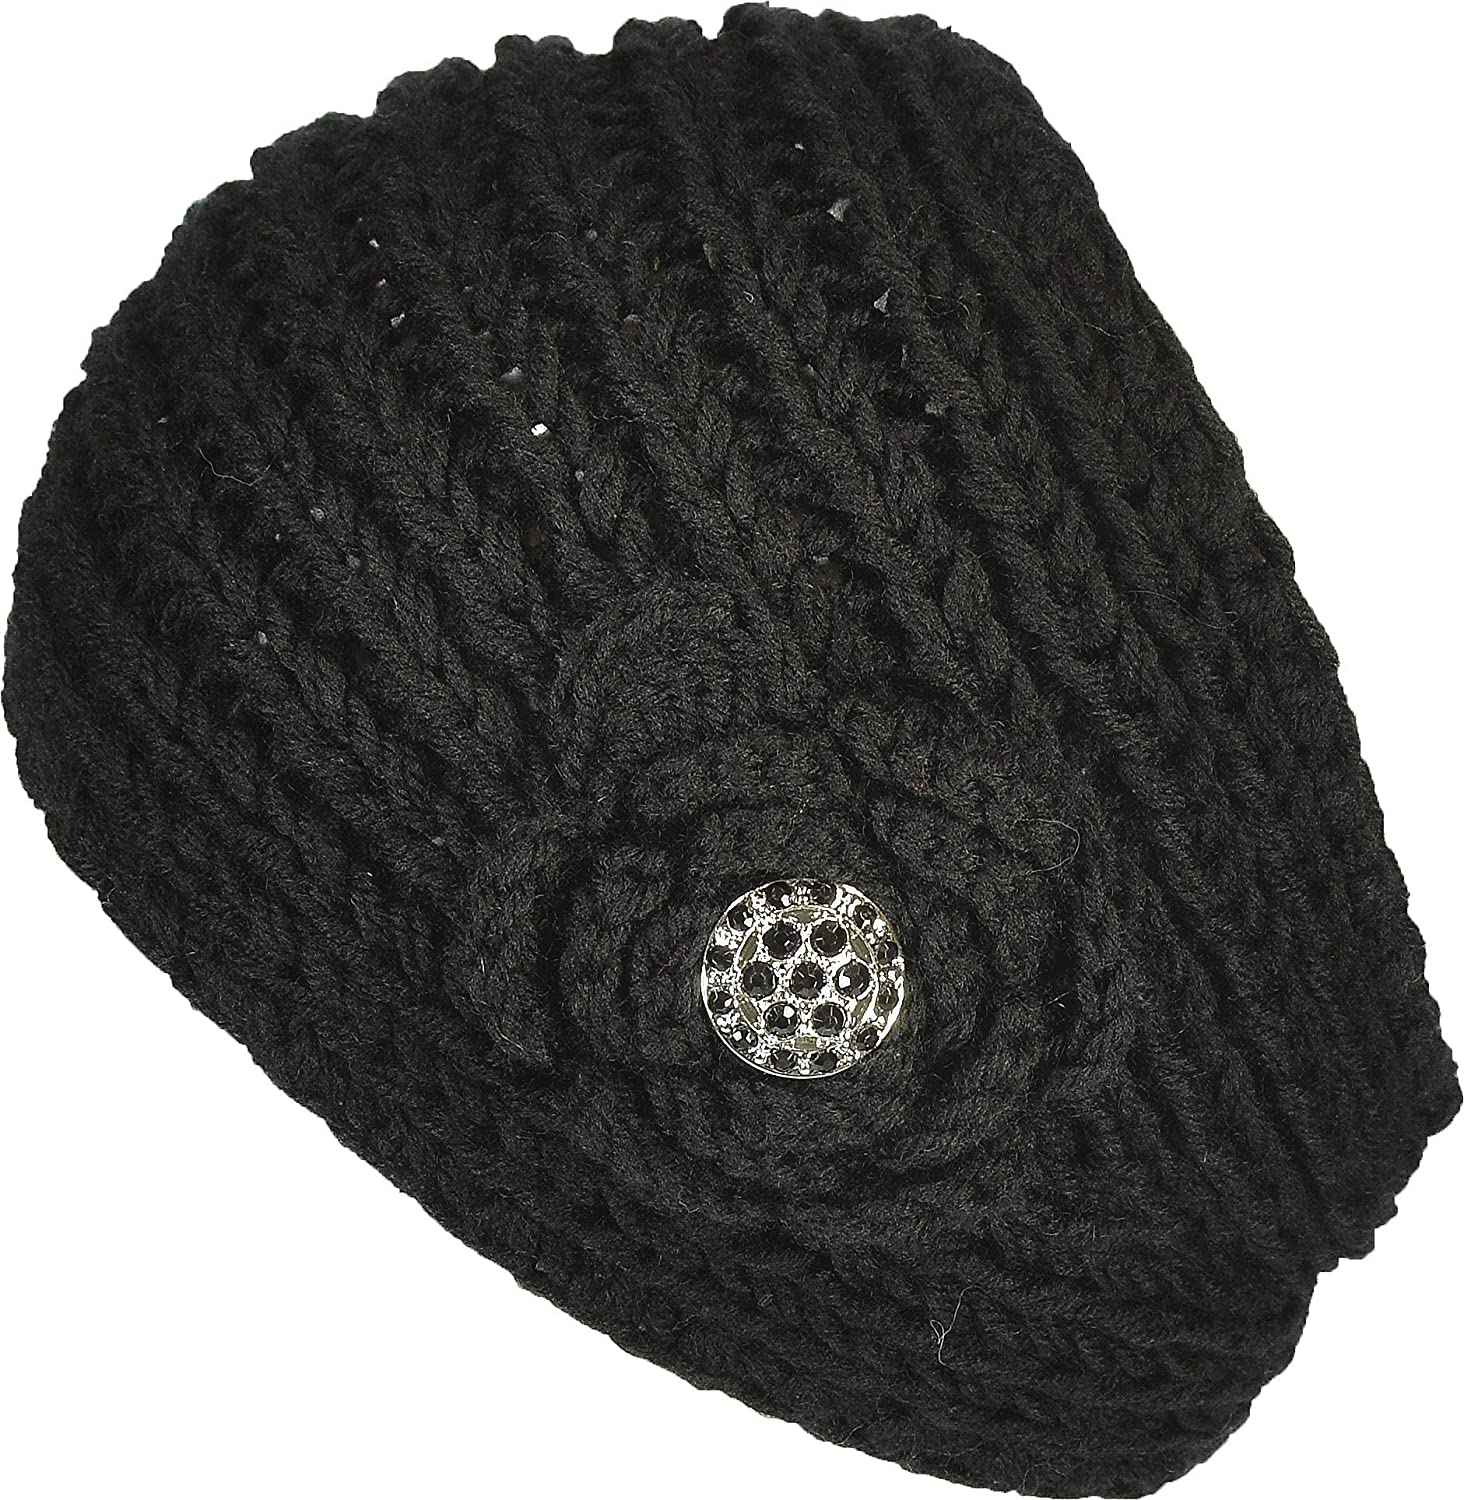 Hand By Hand Women's Knitted Headband Headwrap Crocheted Floral